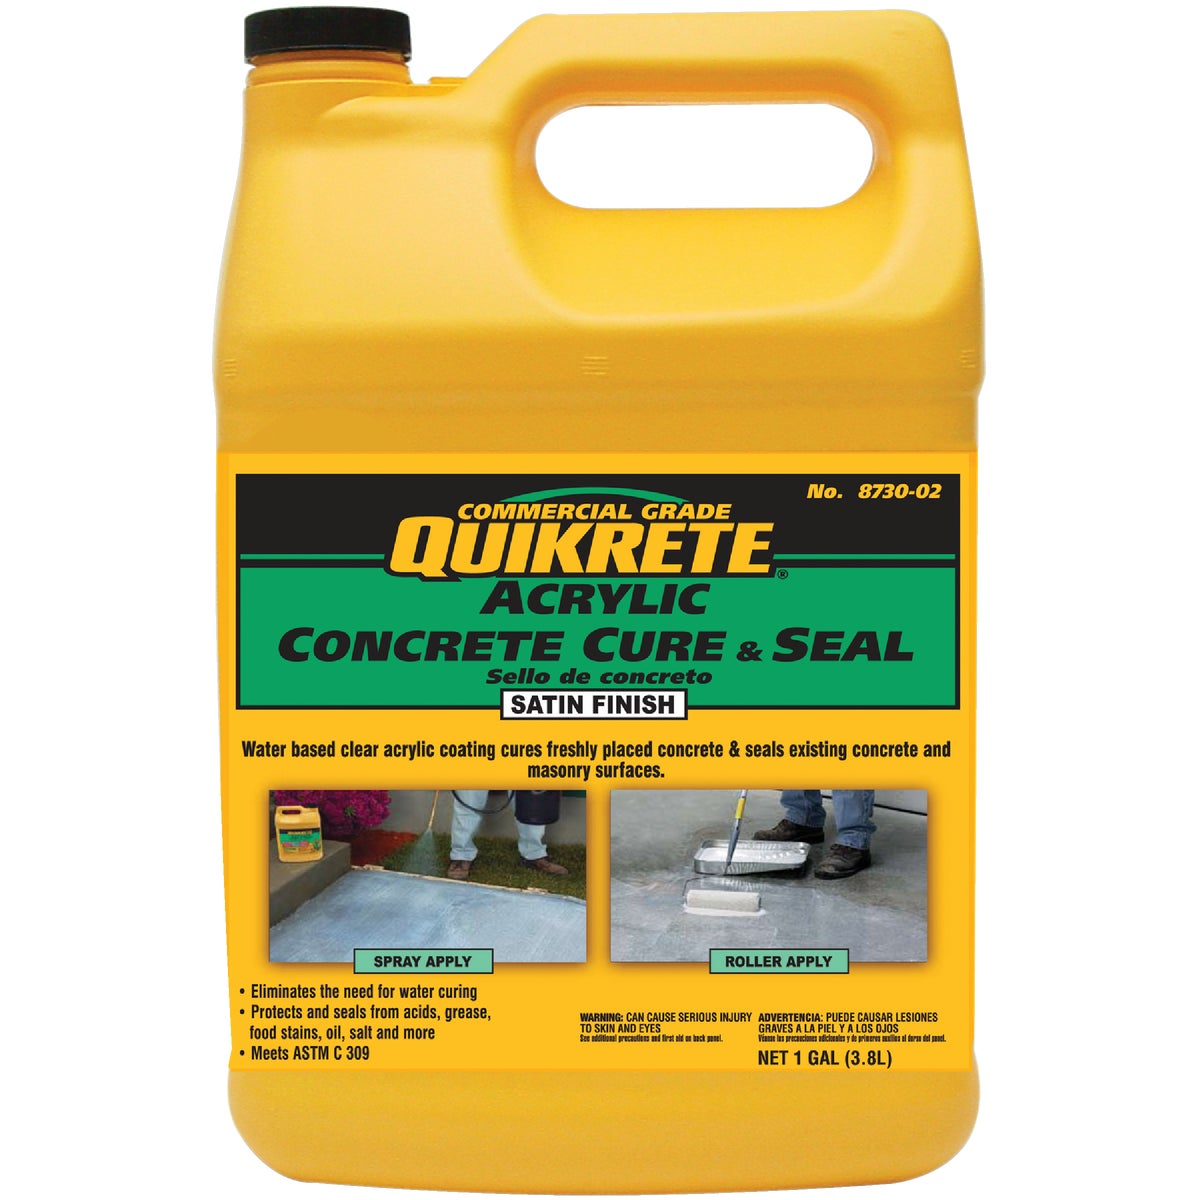 GAL CONCRETE CURE & SEAL - 873002 by Quikrete Co